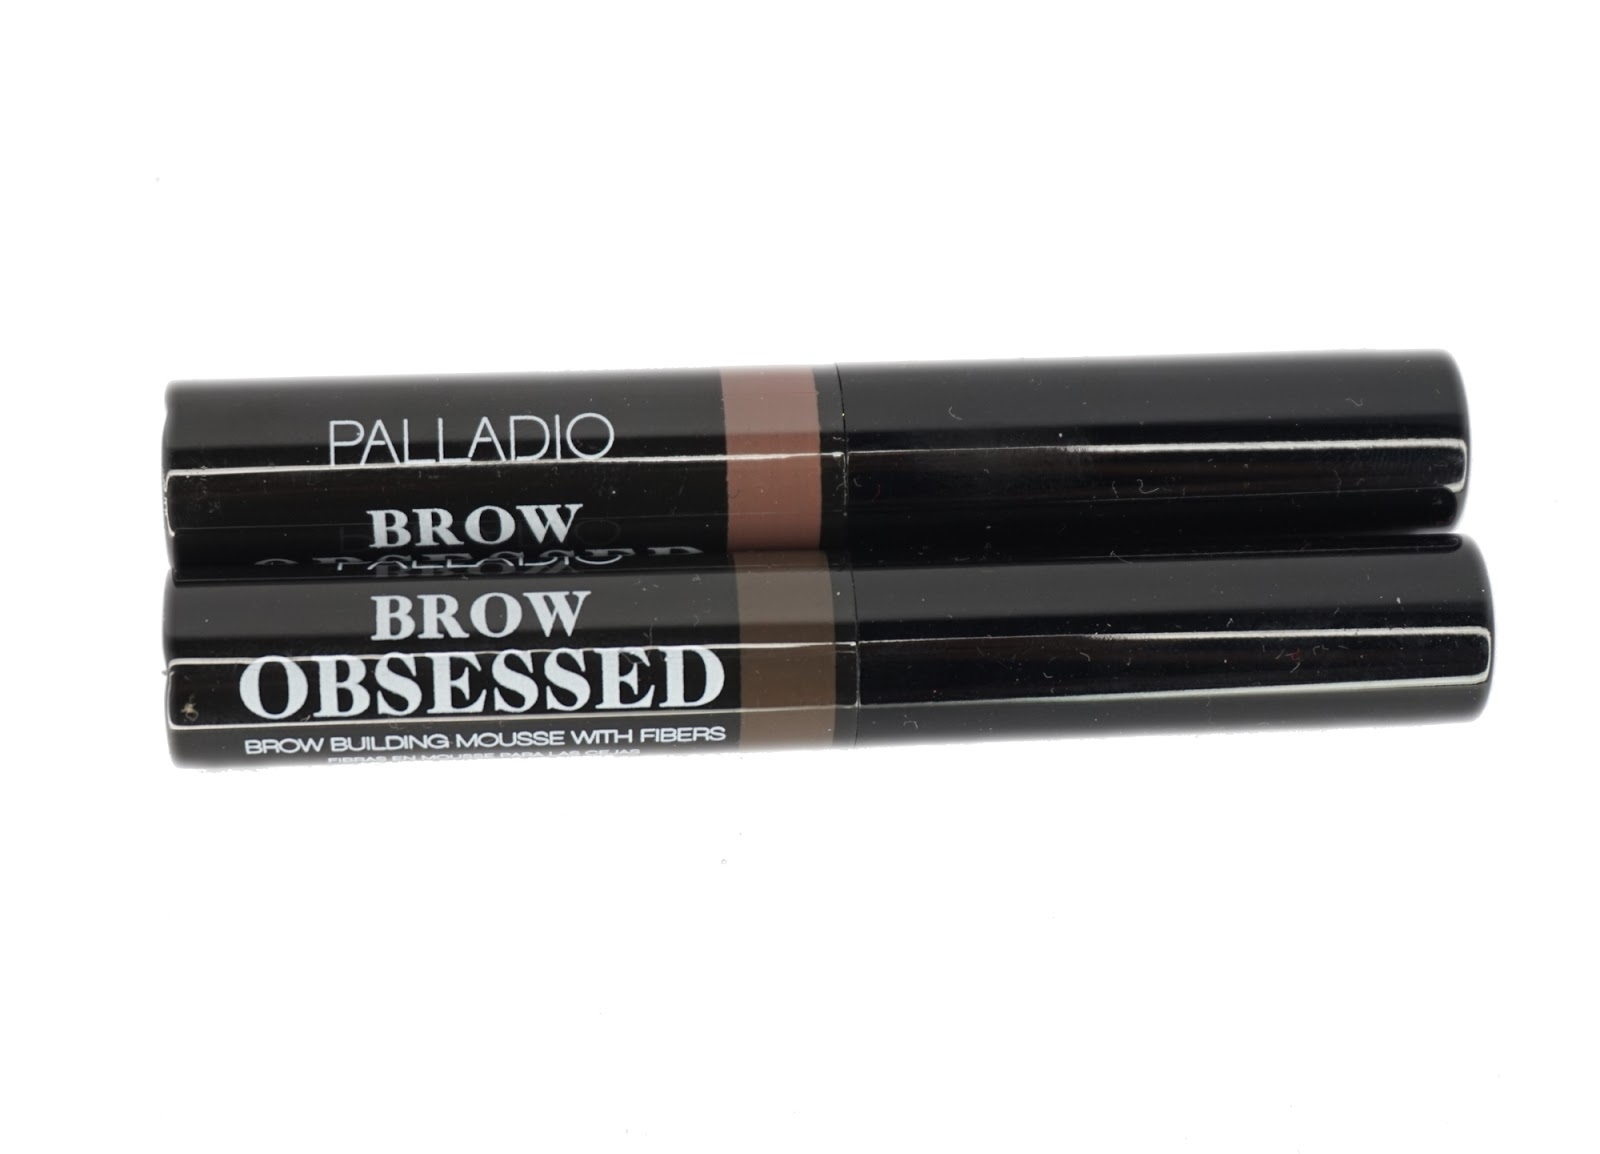 Palladio Brow Obsessed Mousse With Fibers Review